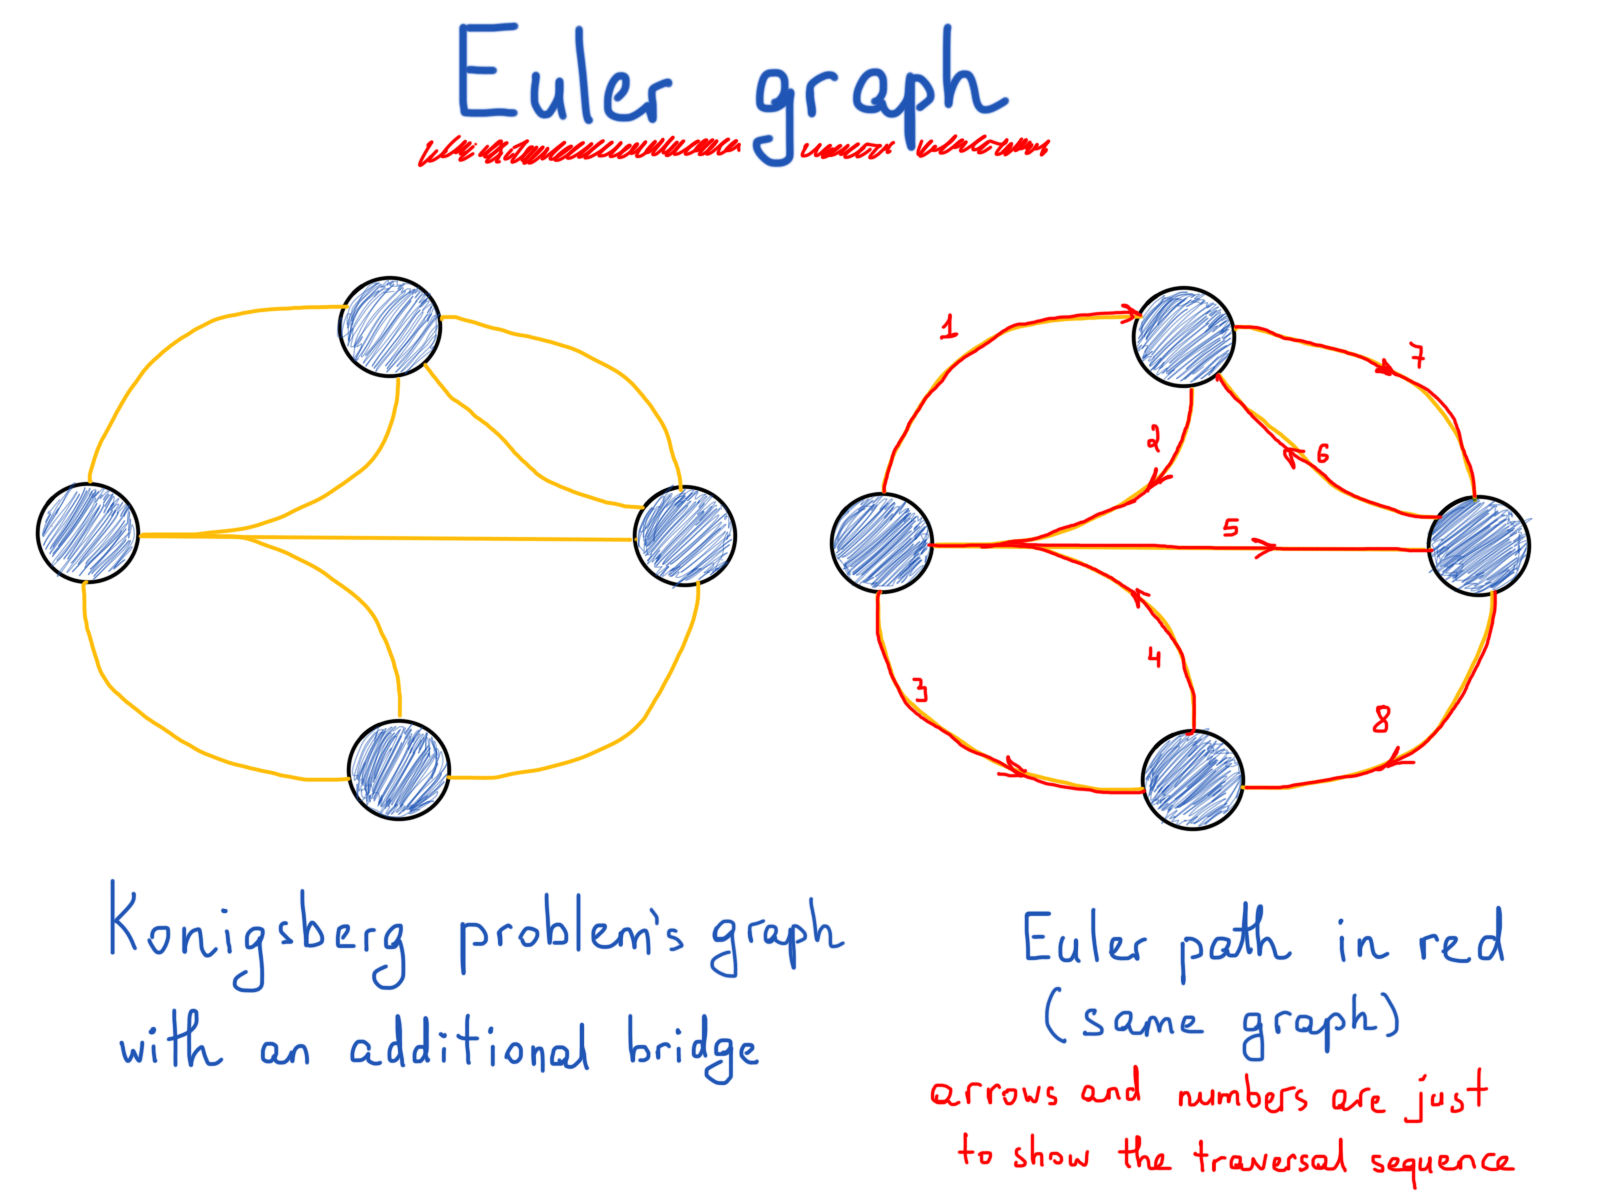 How To Think In Graphs An Illustrative Introduction Graph Theory Ok Here S A Diagram Of Use Simple On Off Switches Together With So Why Did We Discuss Knigsberg Bridges Problem And Euler The First Place Well Its Not Boring By Investigating